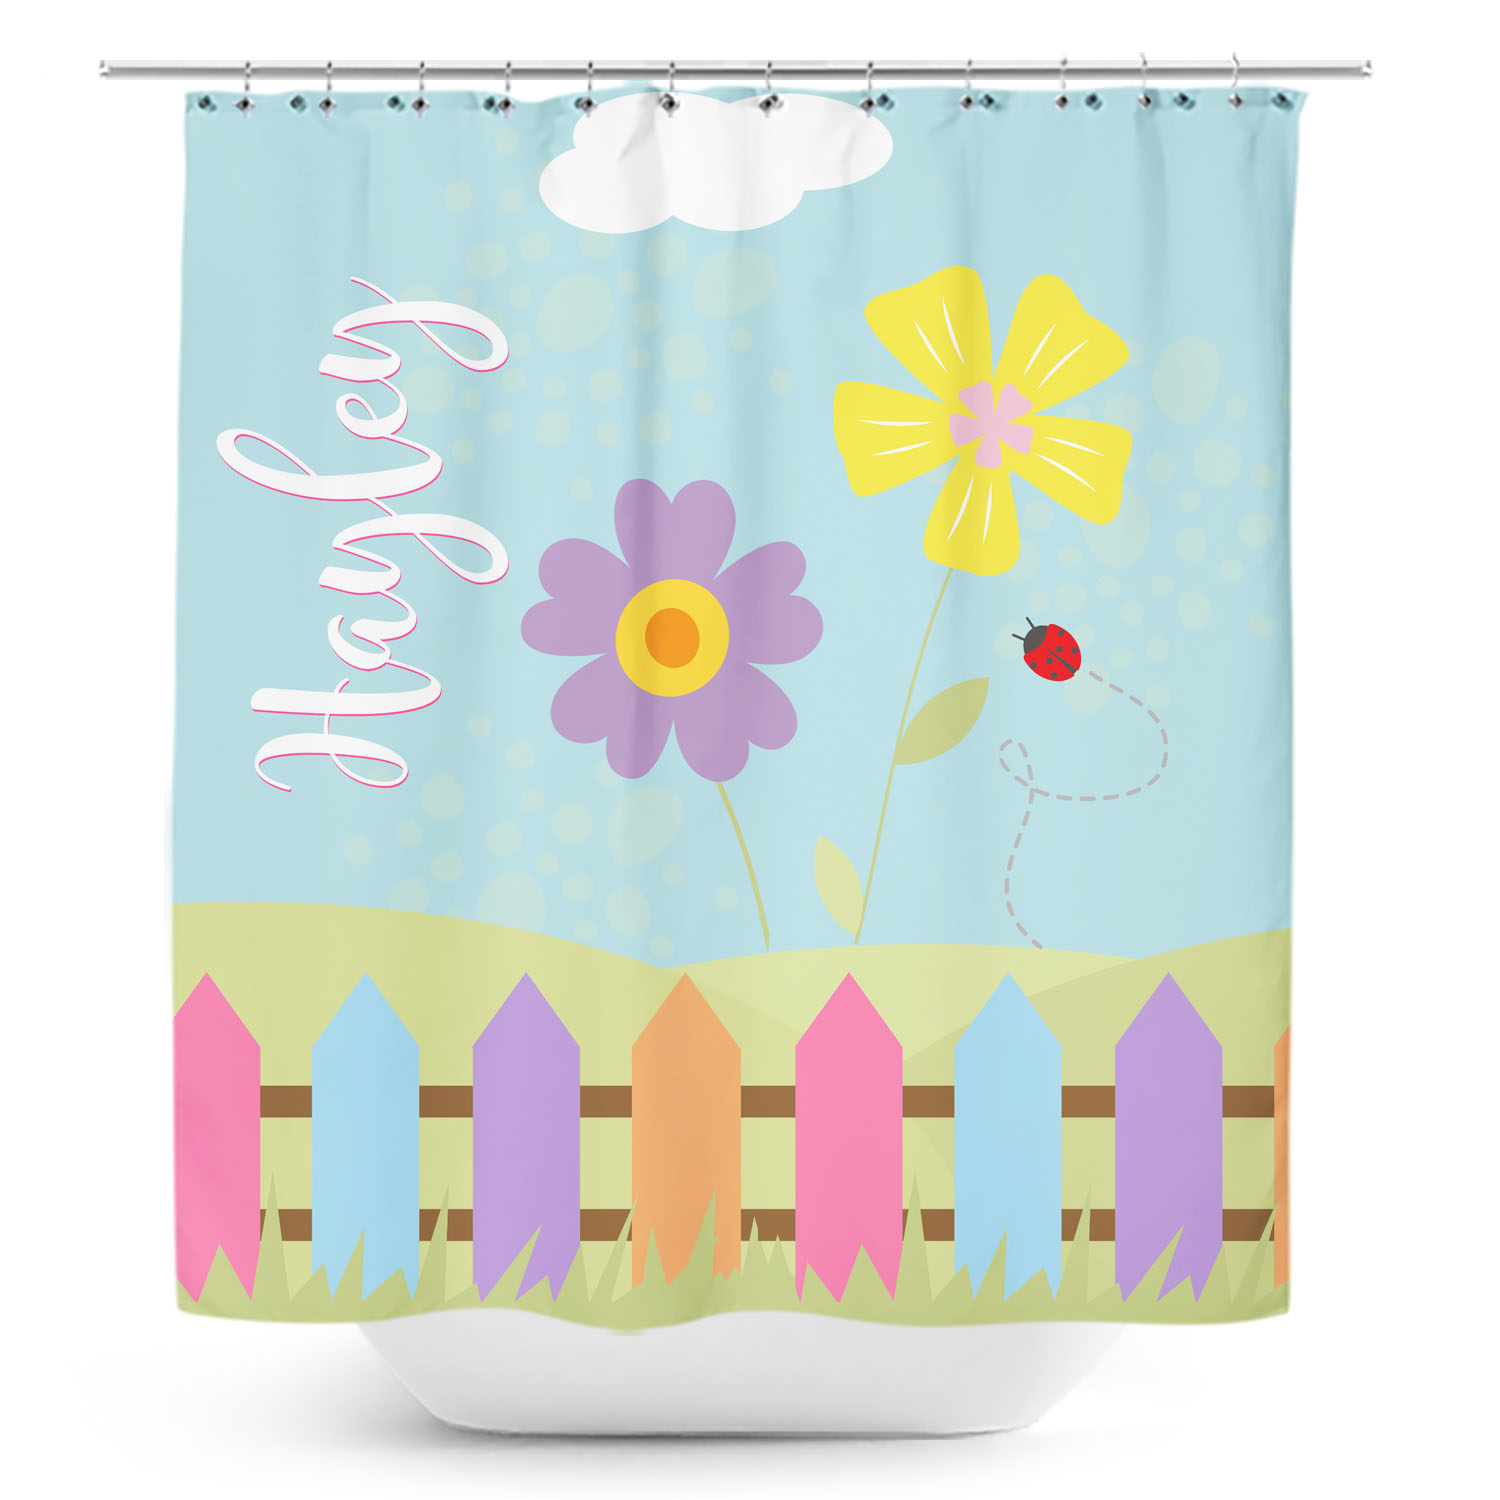 PKSC000021-TweetDreams-SHOWERCURTAIN Tweet Dreams Little Birdies Girls Personalized Kids Bathroom Shower Curtain by Pickleberry Kids